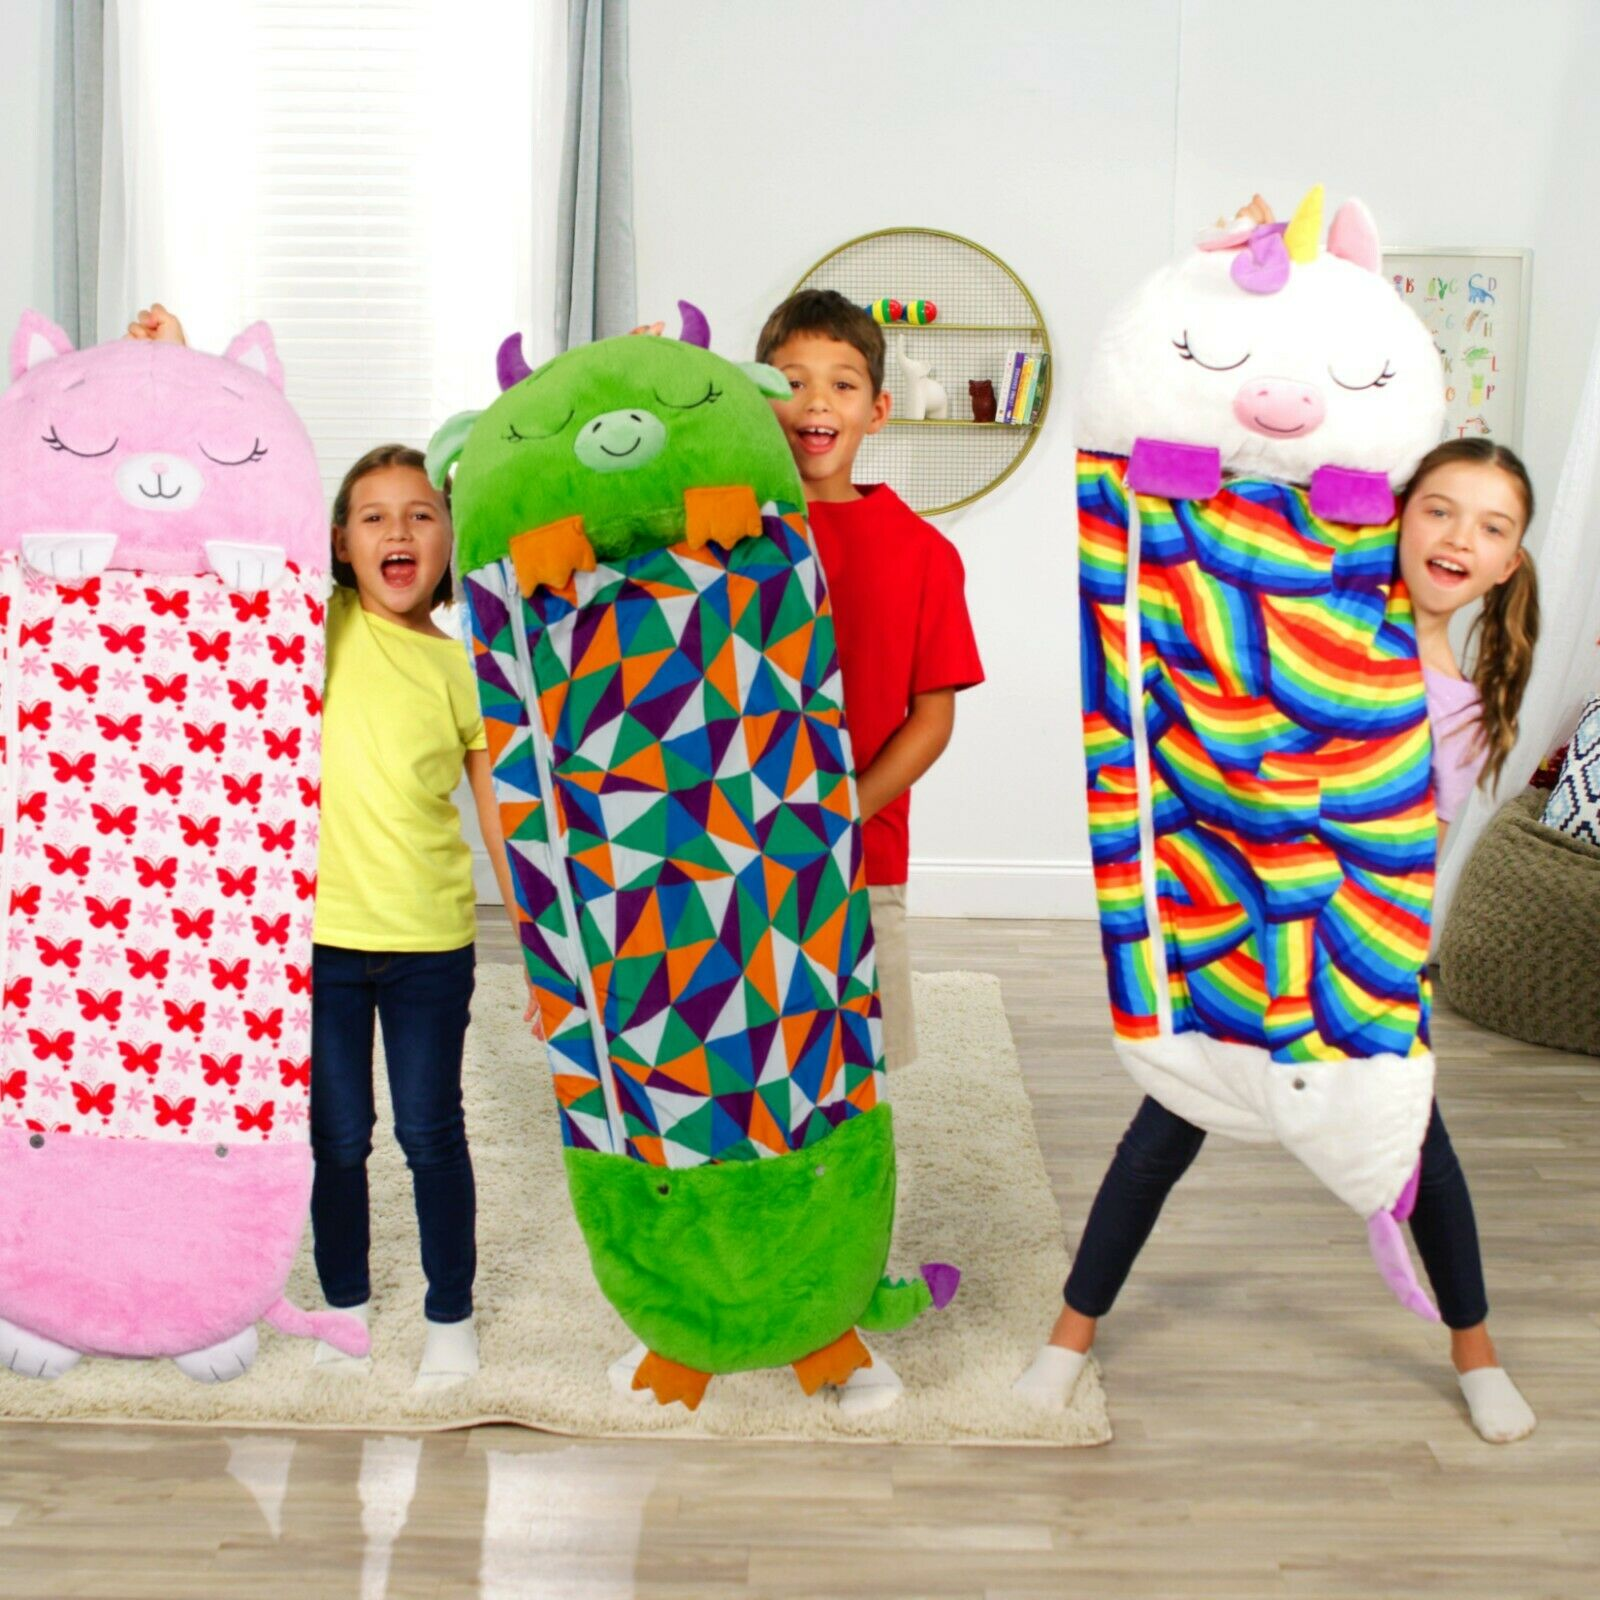 Happy nappies gifts for children【🔥ON SALE AT 50%OFF】